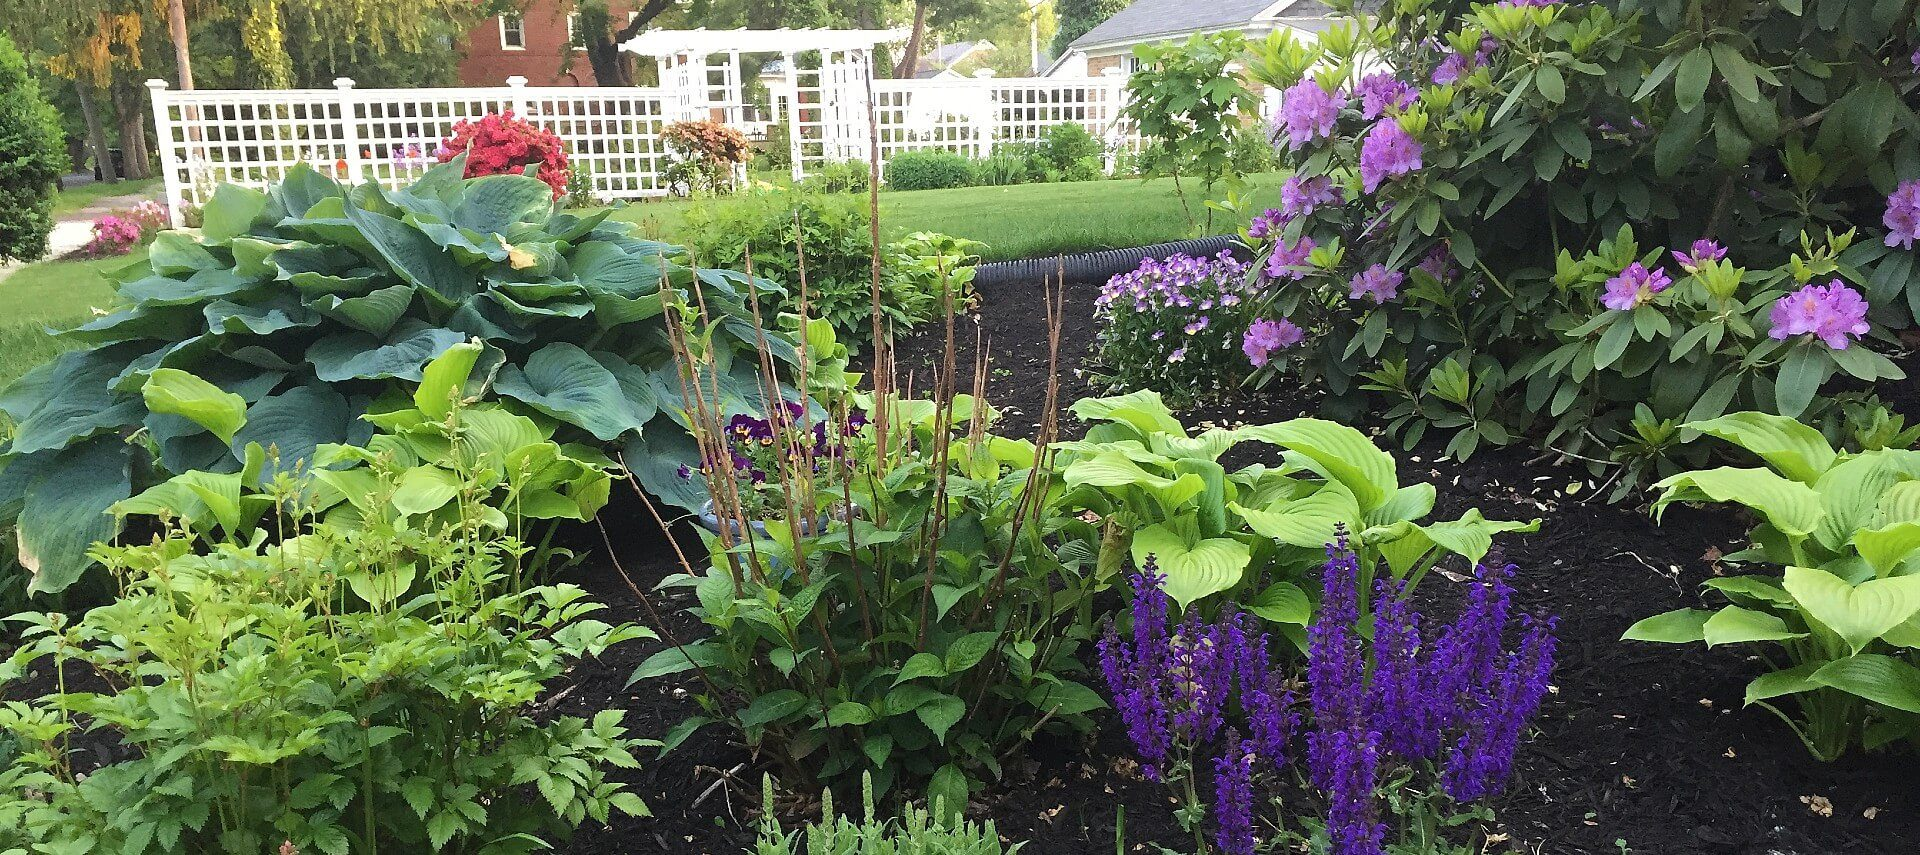 Garden bed full of lush green plants and purple and red flowers with white fence in background